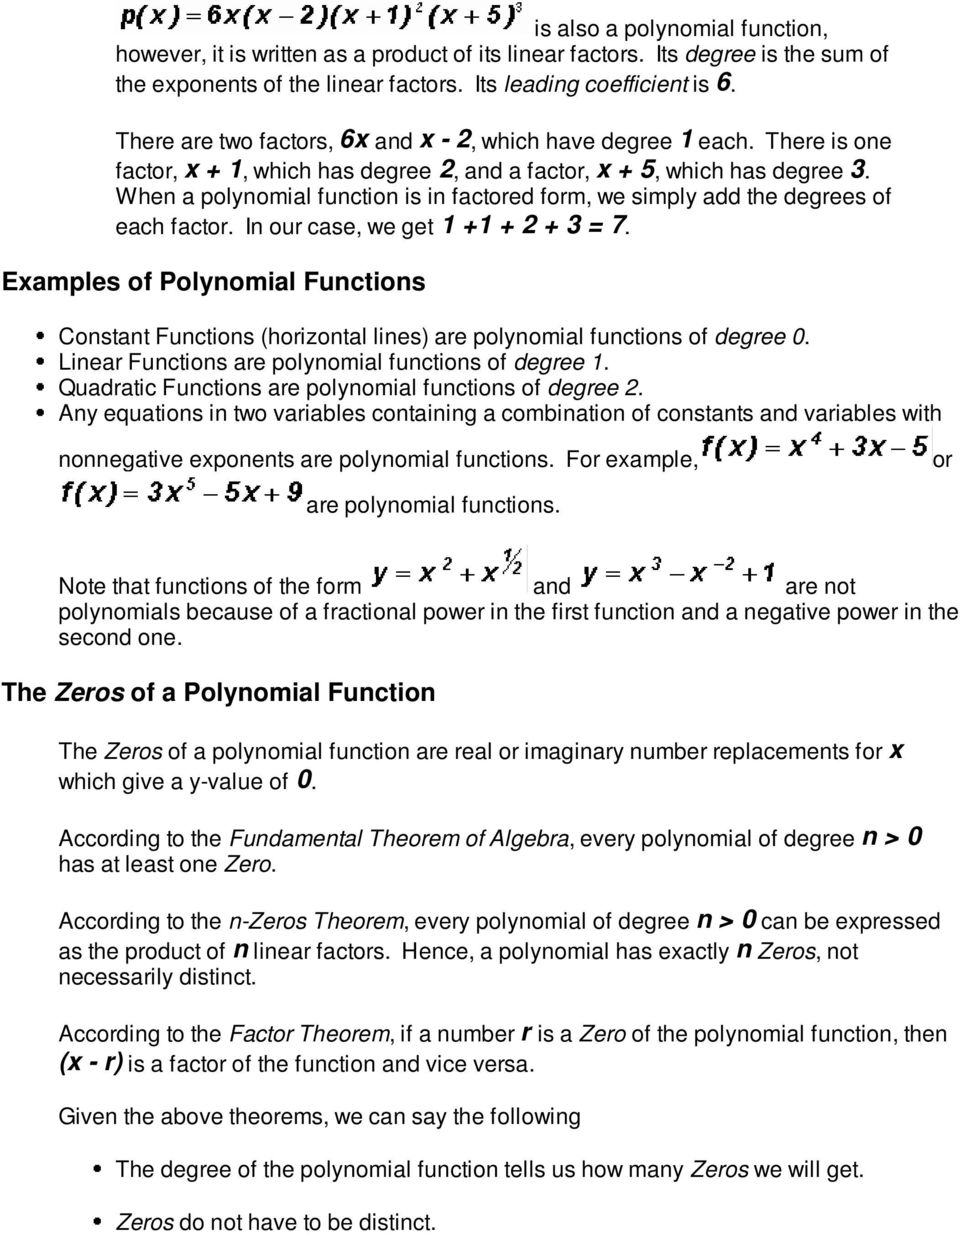 When a polynomial function is in factored form, we simply add the degrees of each factor. In our case, we get 1 +1 + 2 + 3 = 7.